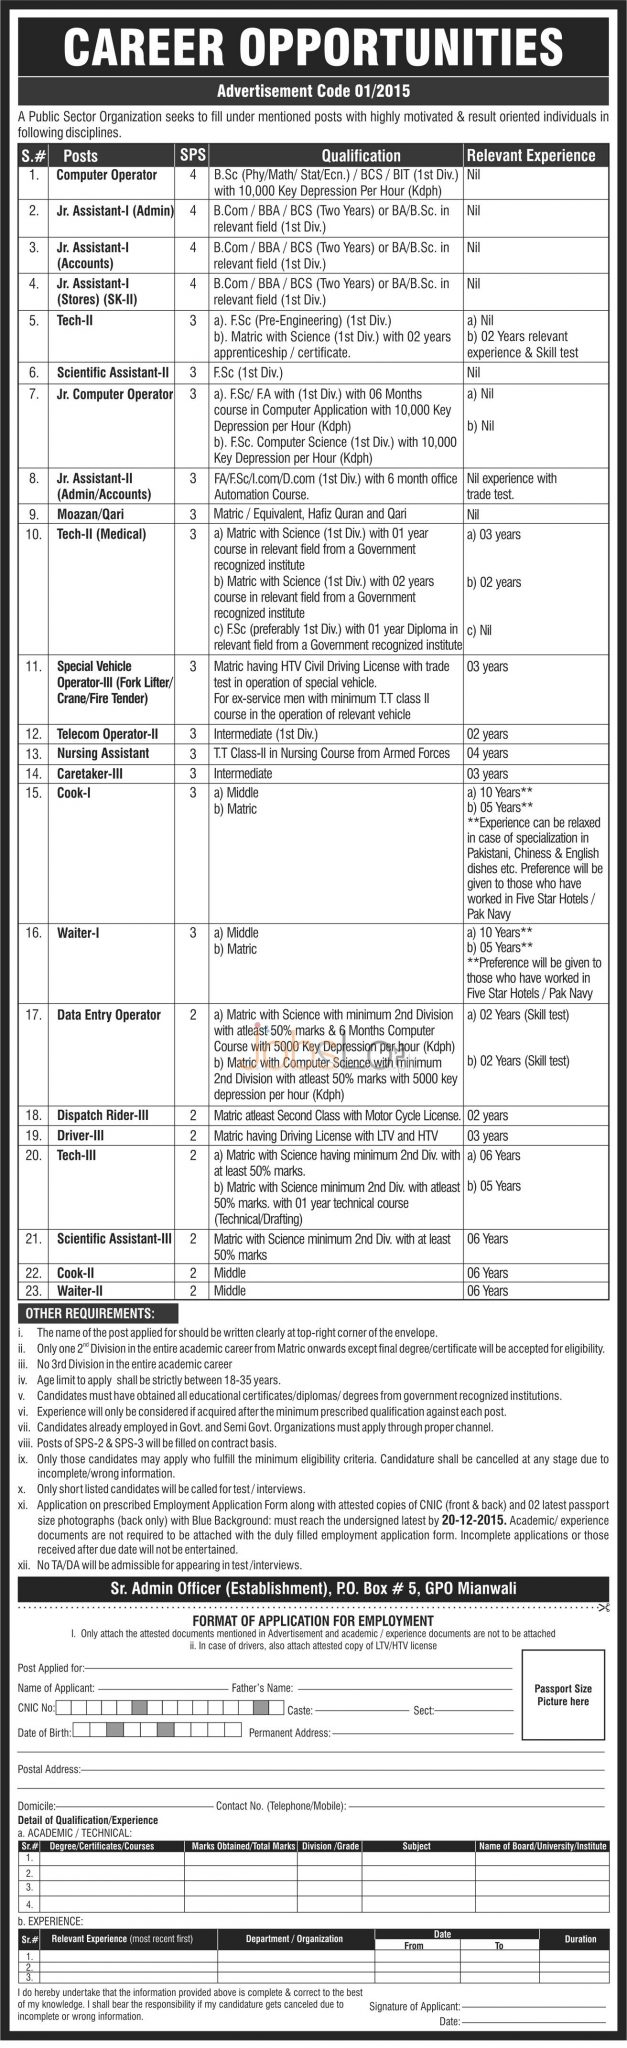 Public Sector Organization Mianwali Jobs